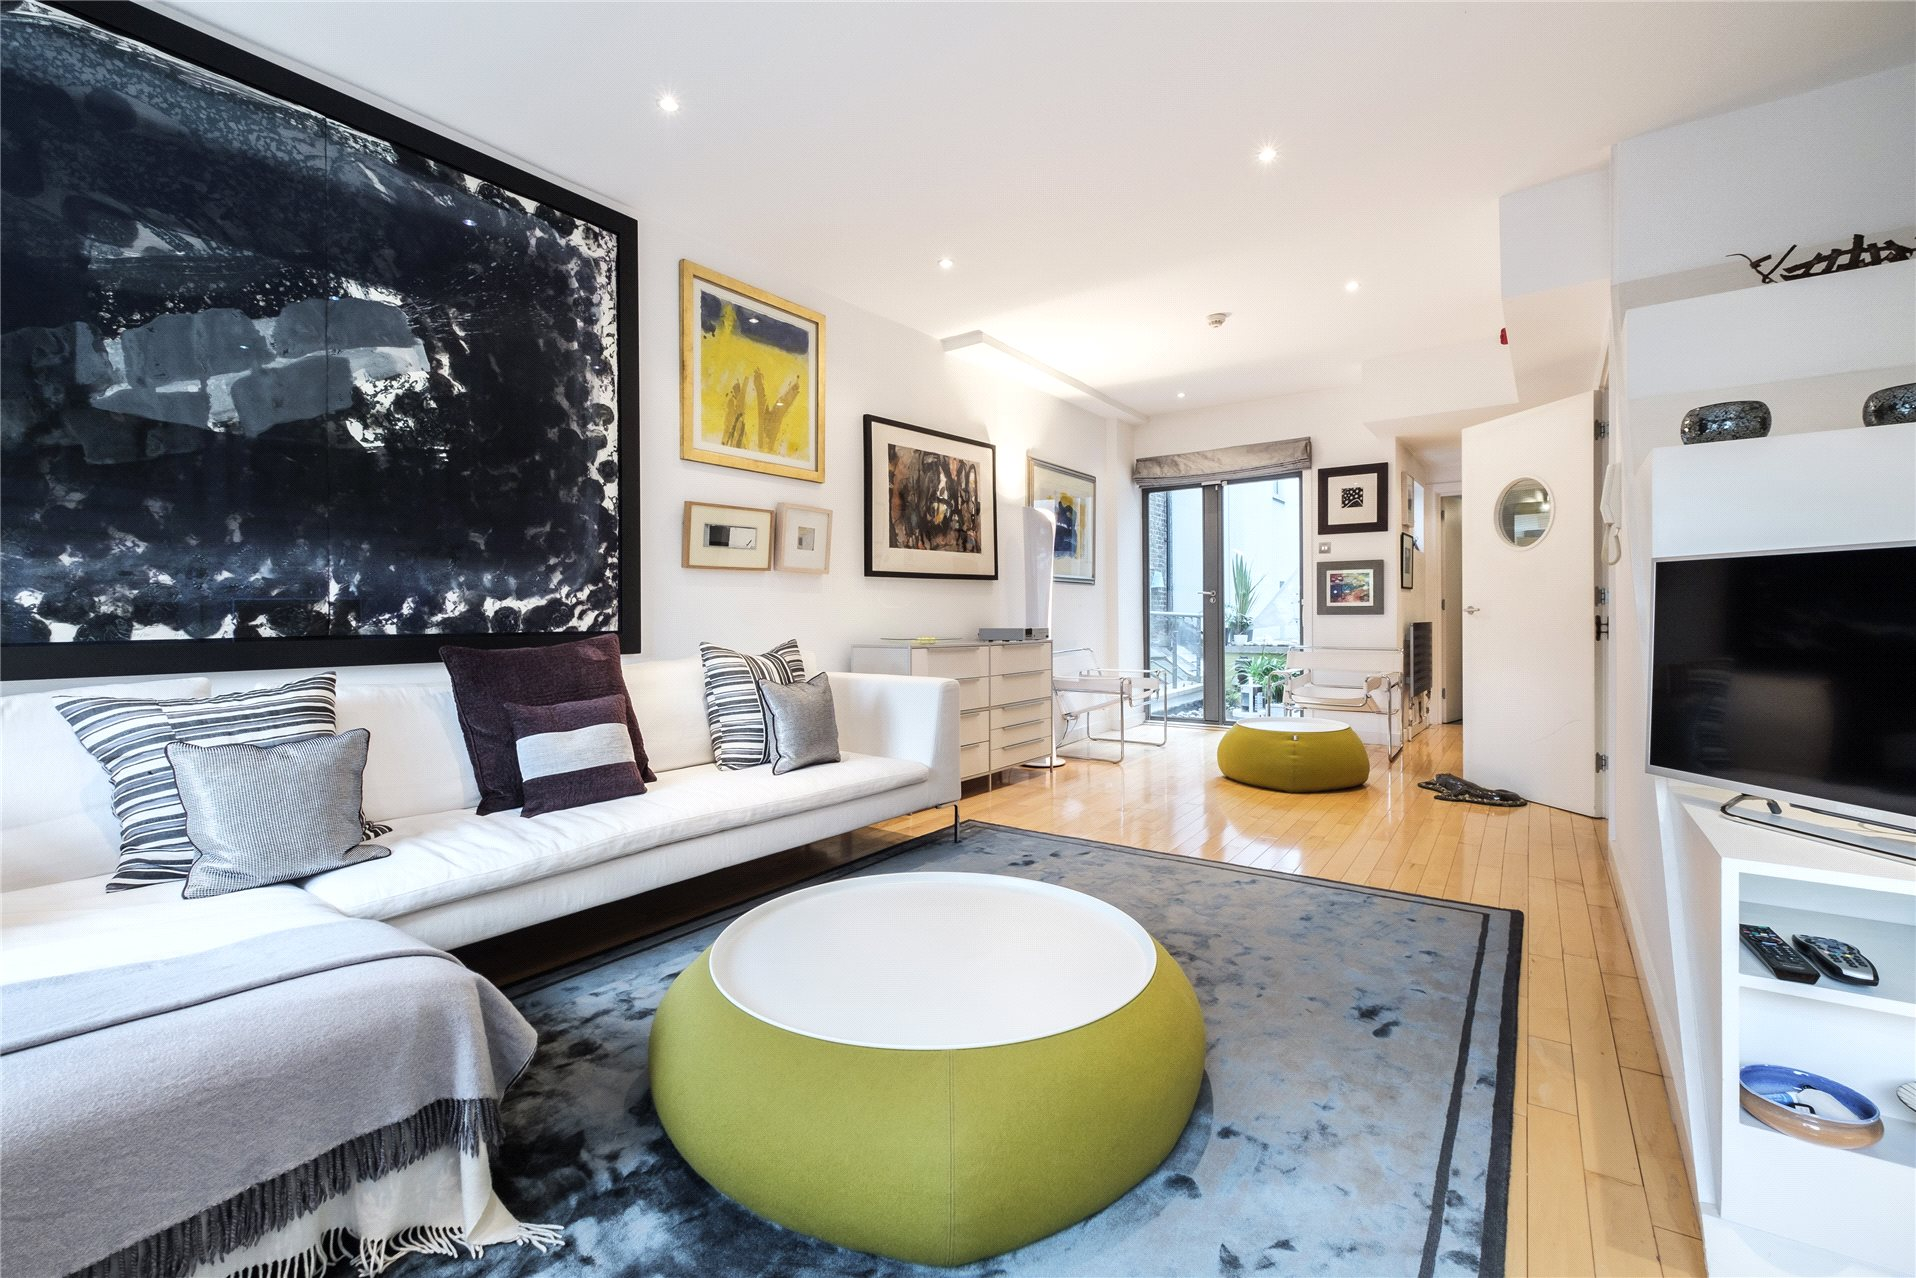 3 Bedrooms House for sale in Baltic Street East, London, EC1Y